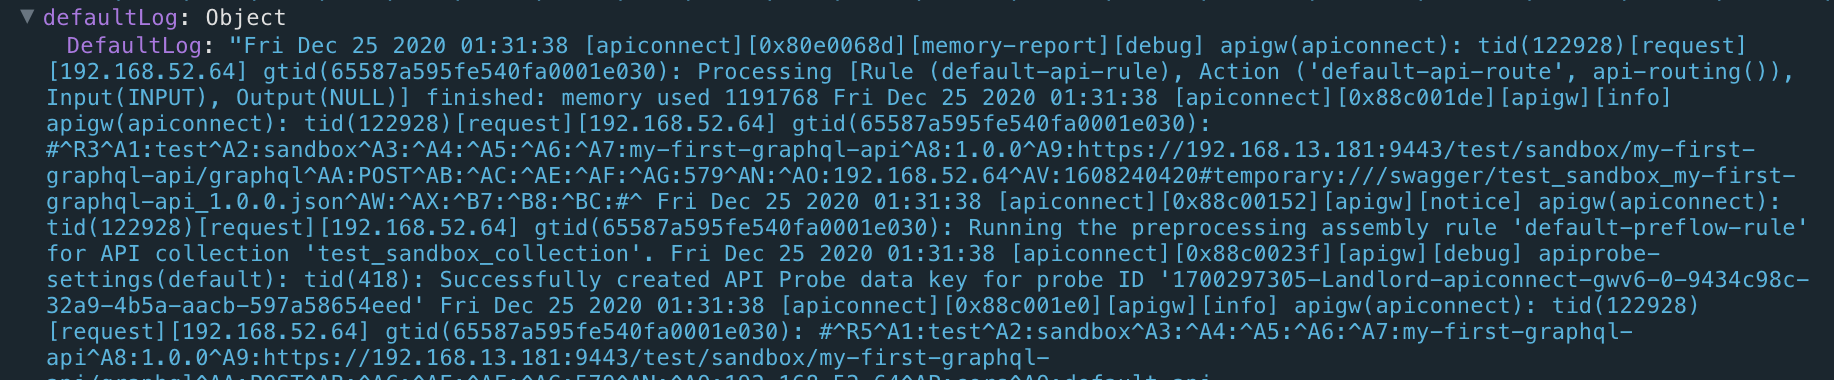 defaultLog in debug trace with the first few log messages